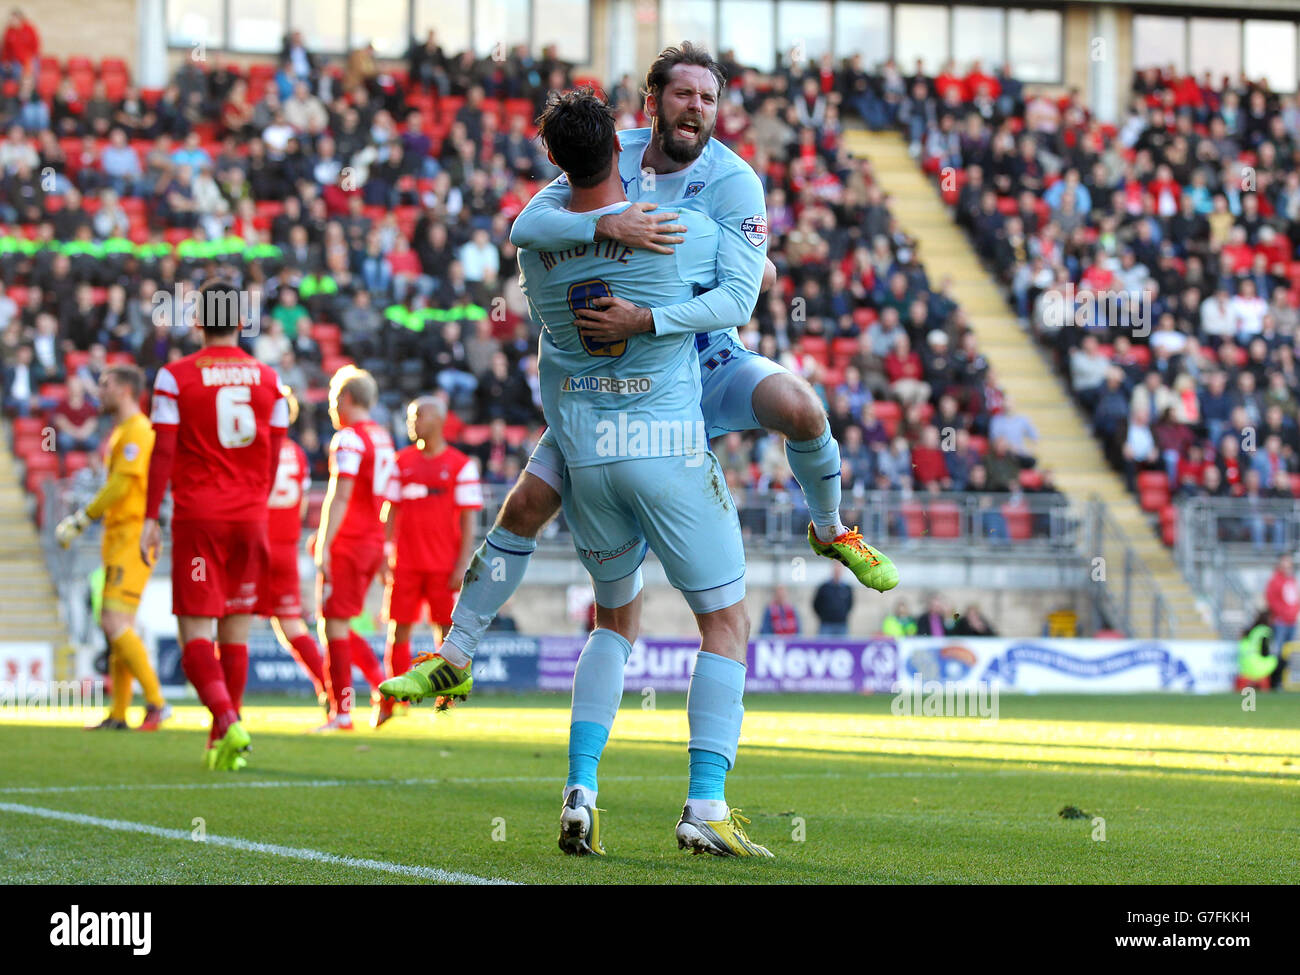 Leyton orient v coventry betting previews learn about bitcoins rate